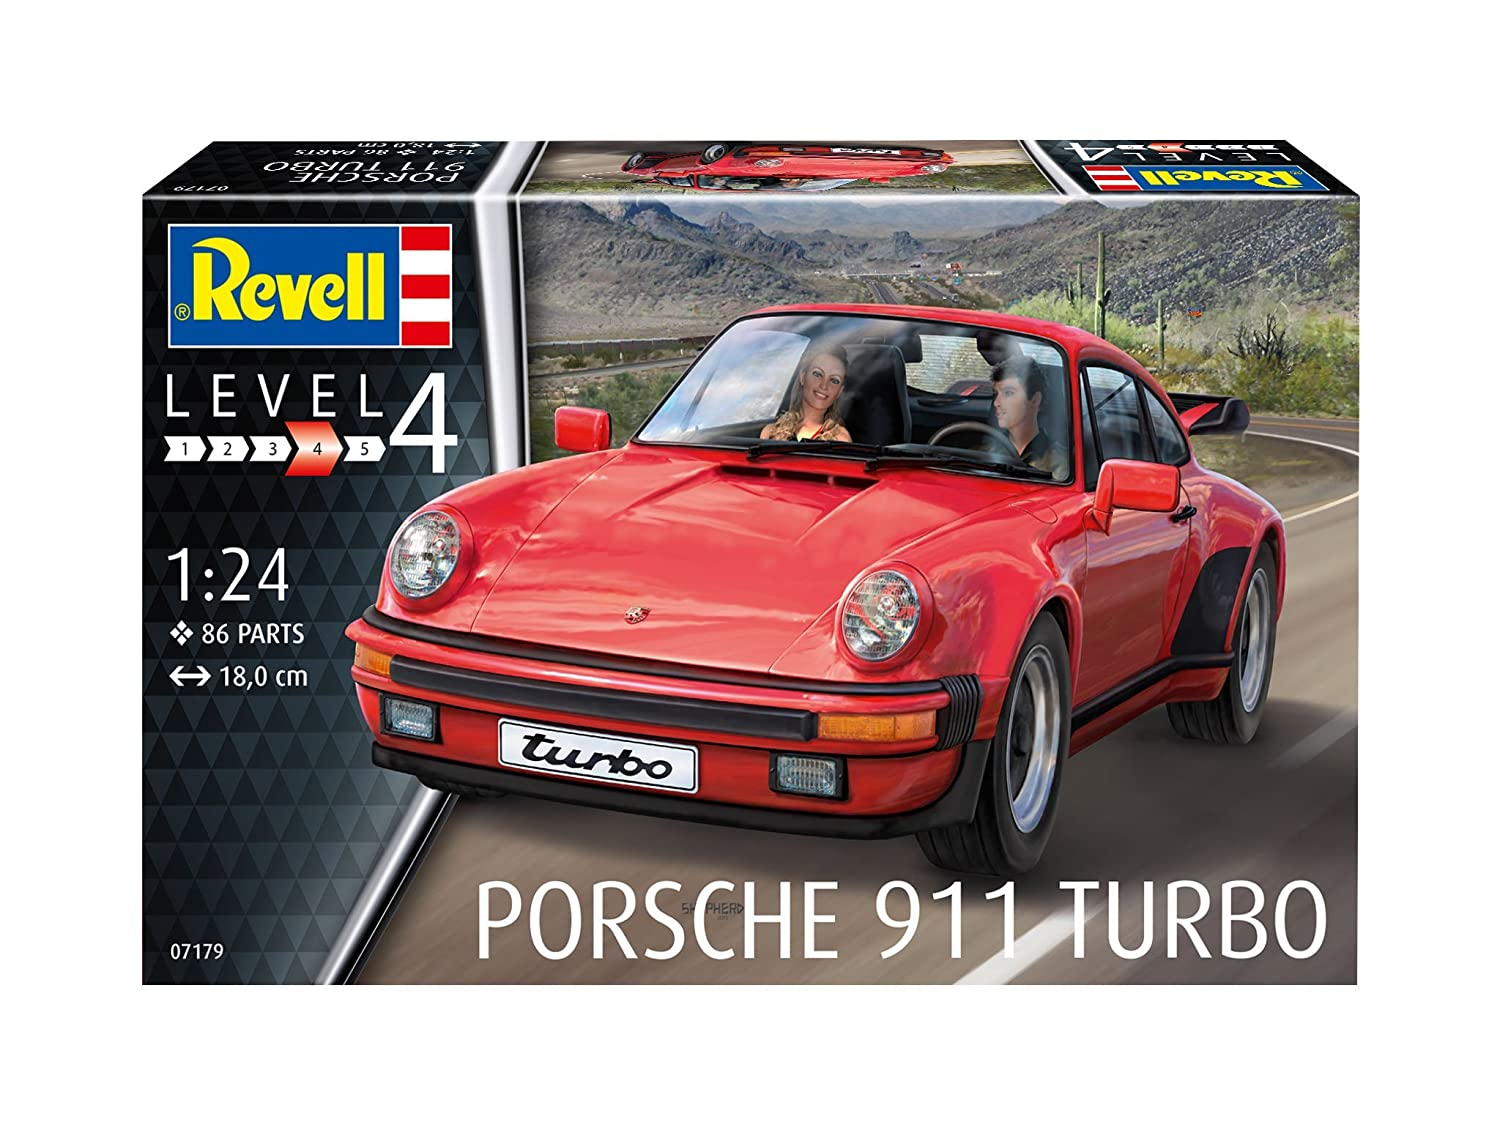 Revell Maqueta Porsche 911 Turbo, Kit Modelo, Escala 1:24 (07179), Color Rojo, 18,0 cm de Largo: Amazon.es: Juguetes y juegos